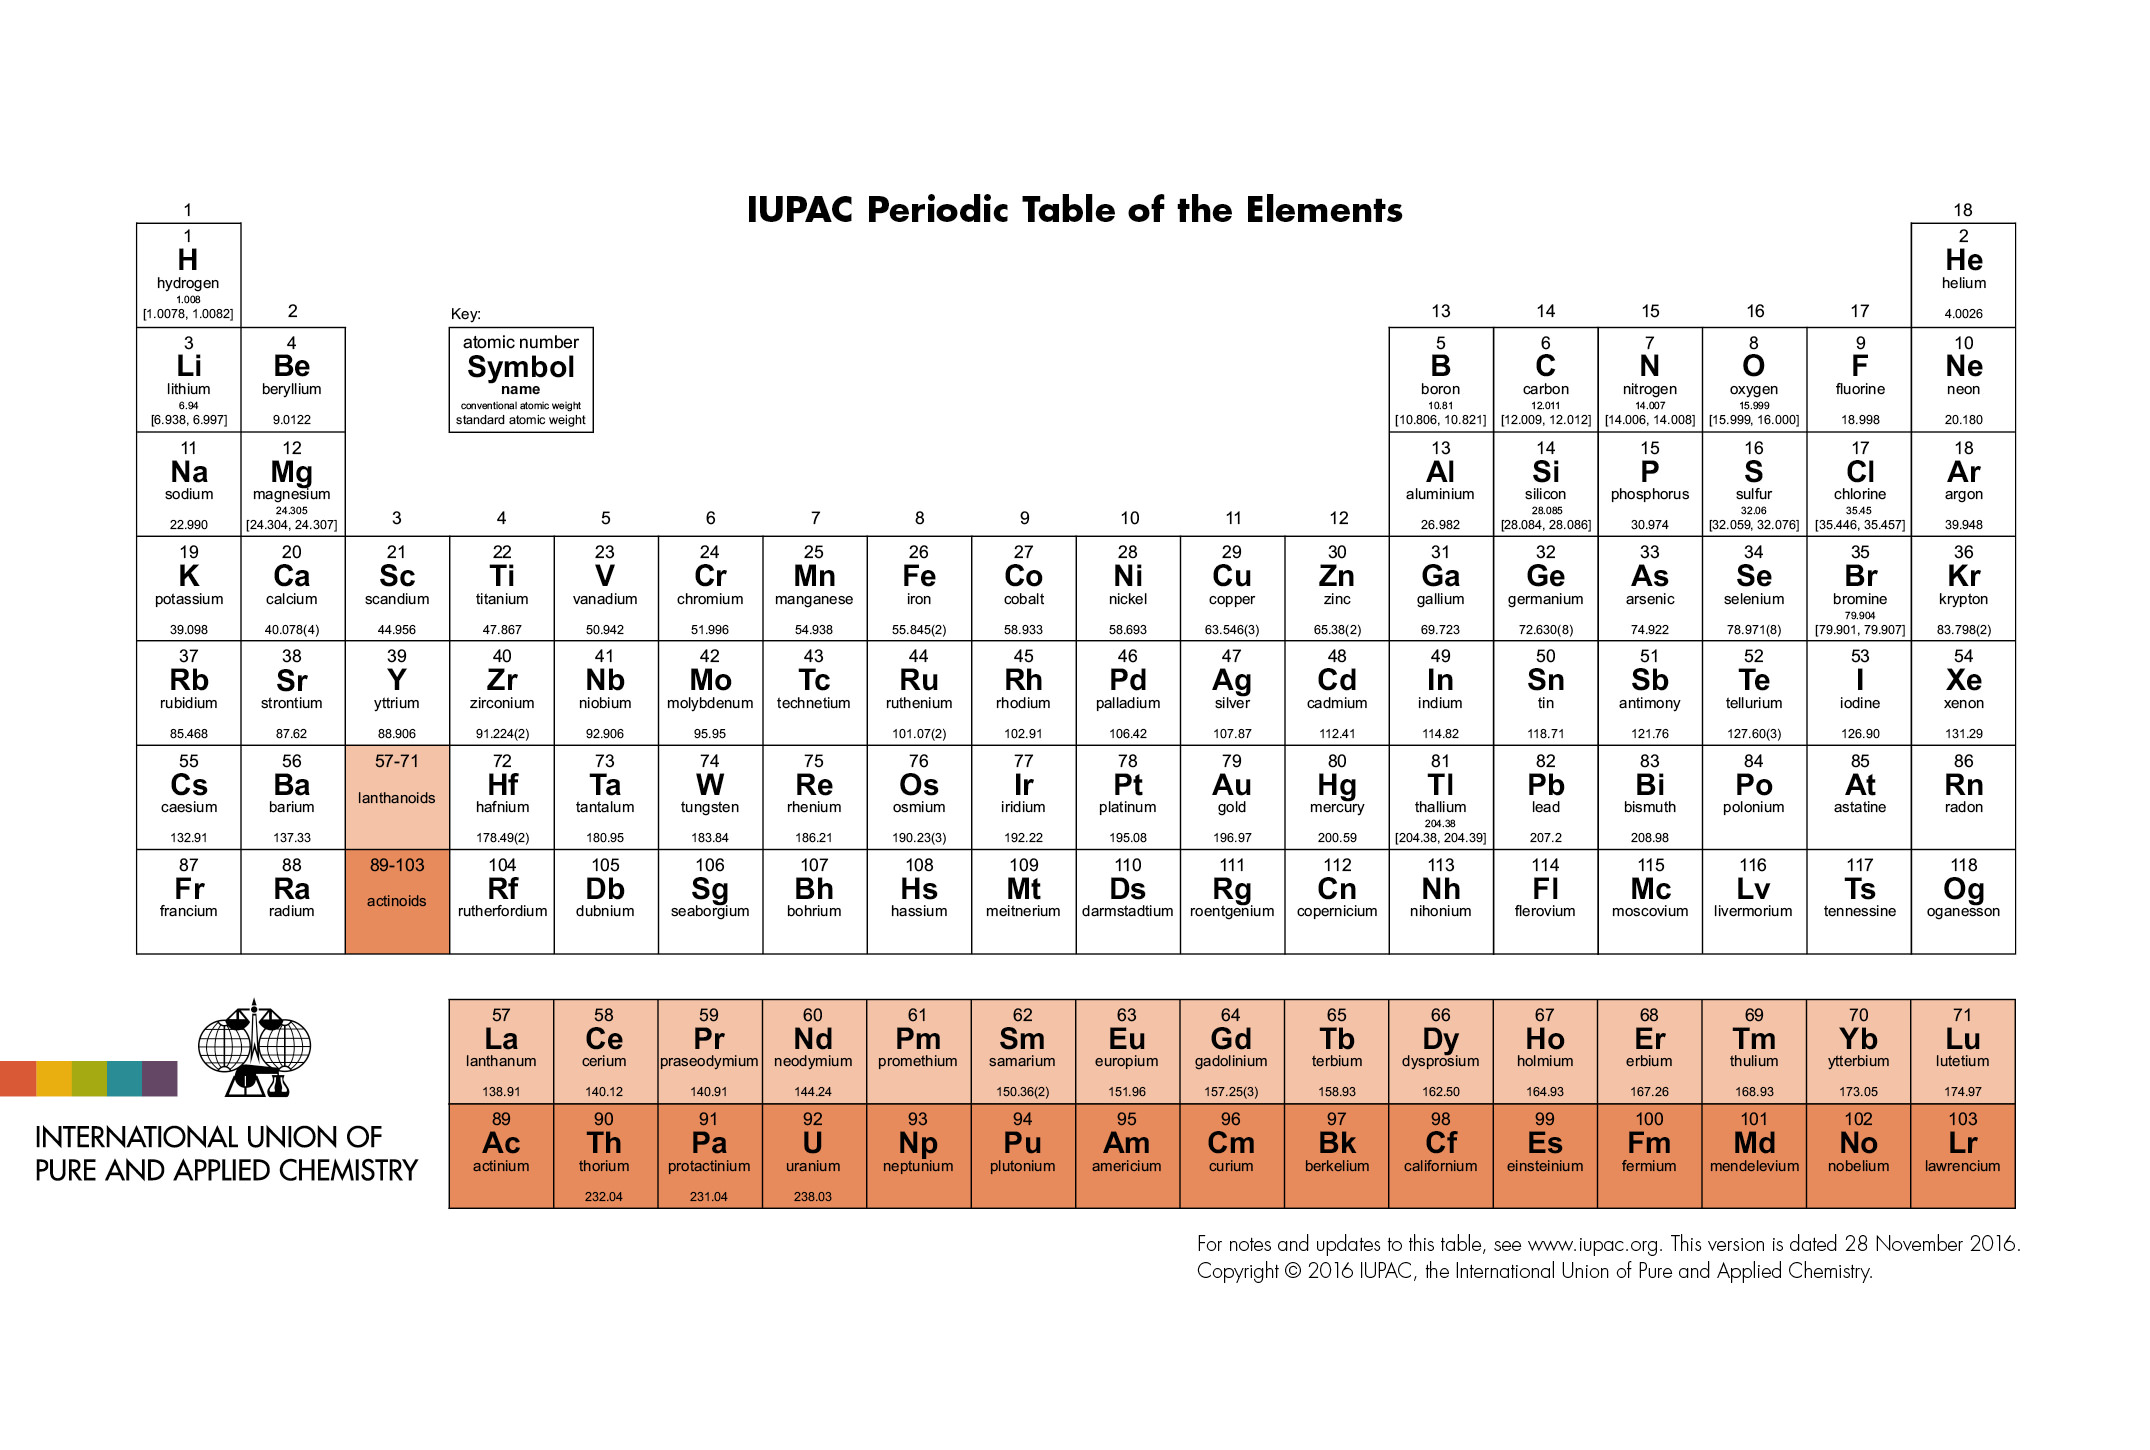 Iupac international union of pure and applied chemistry periodic periodic table of elements urtaz Gallery